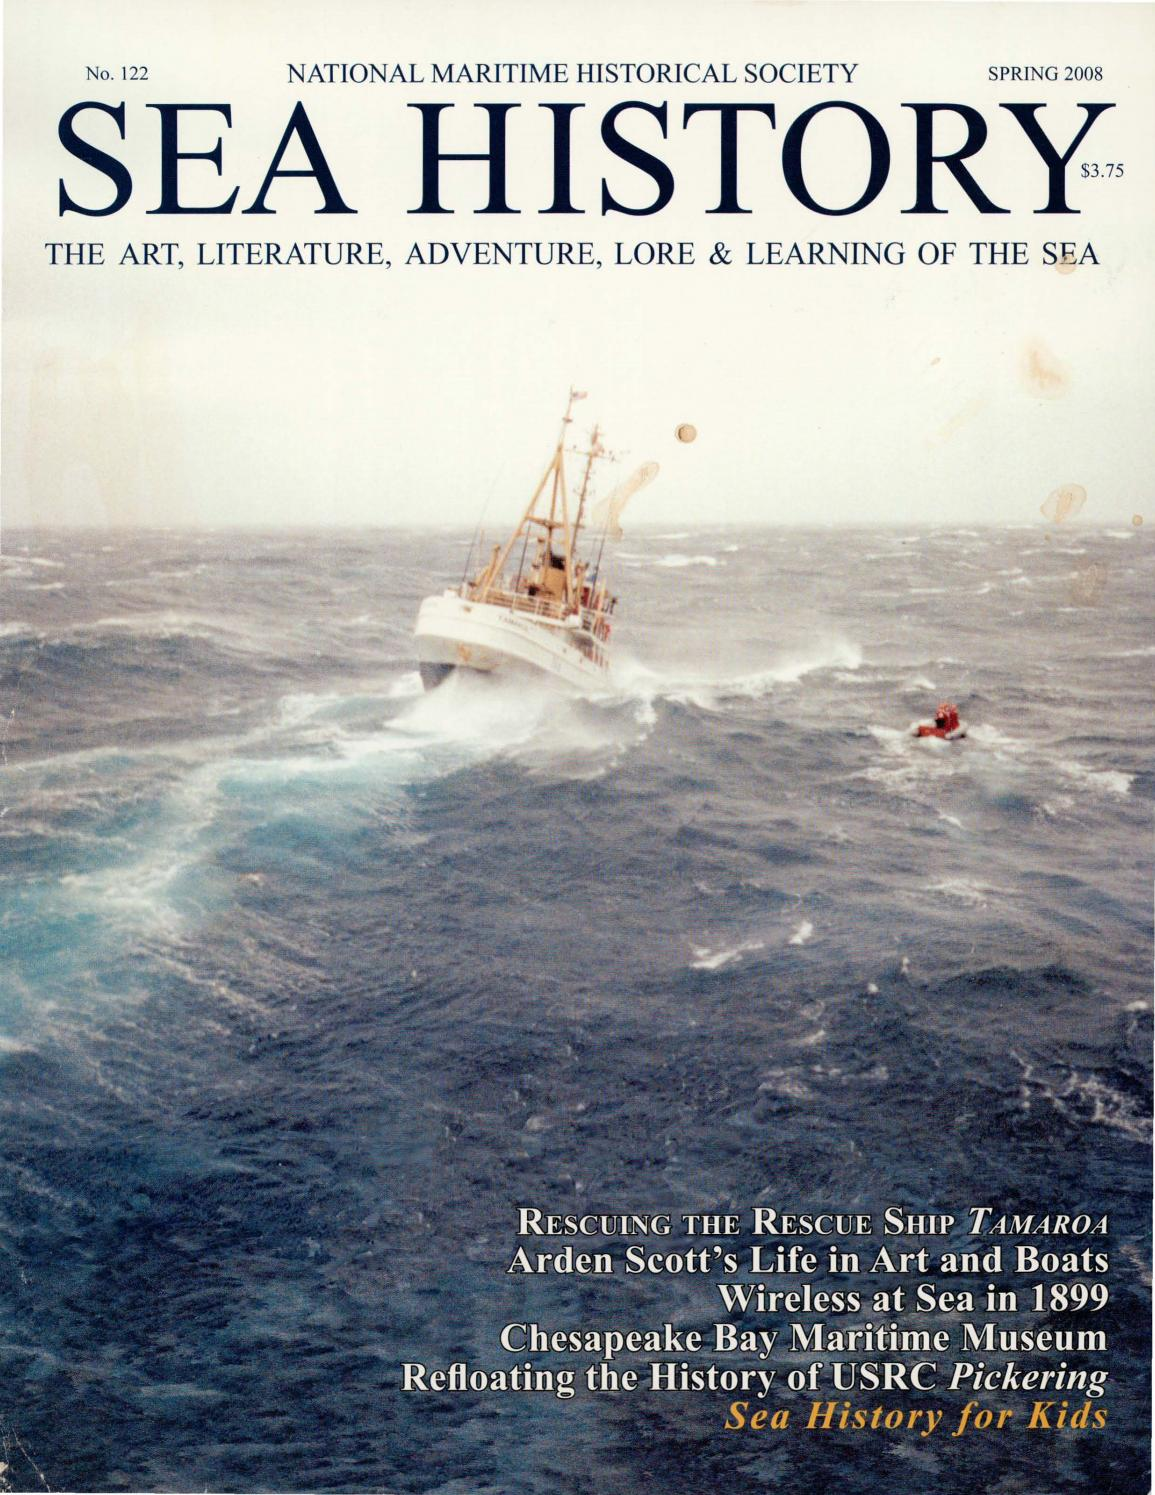 Sea History 122 - Spring 2008 by National Maritime Historical